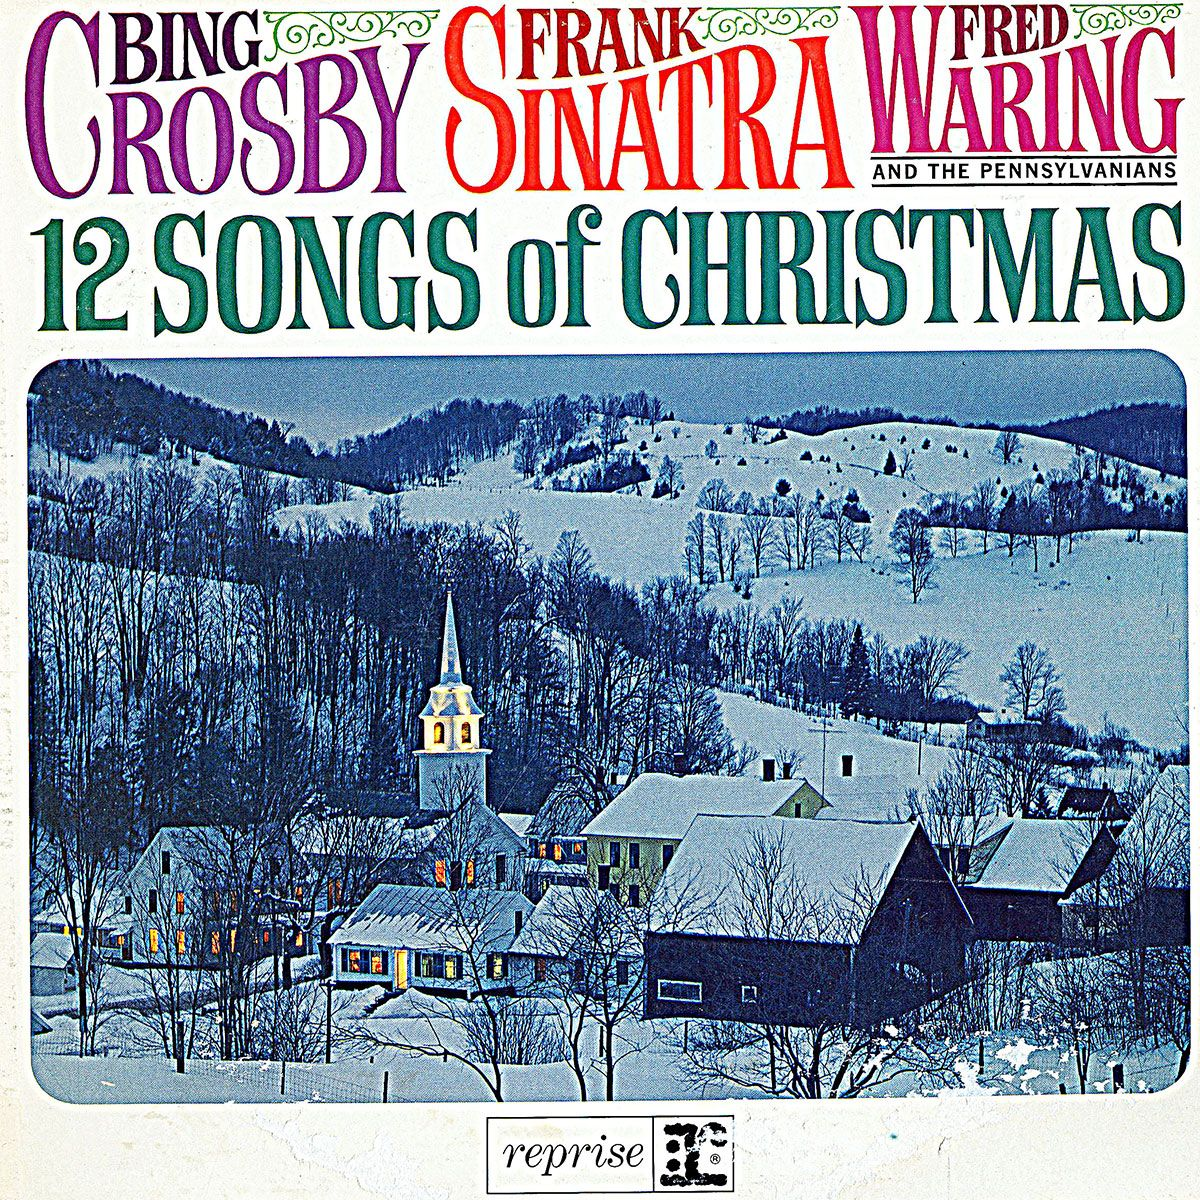 Frank Sinatra, Bing Crosby & Fred Waring - 12 Songs of Christmas ...